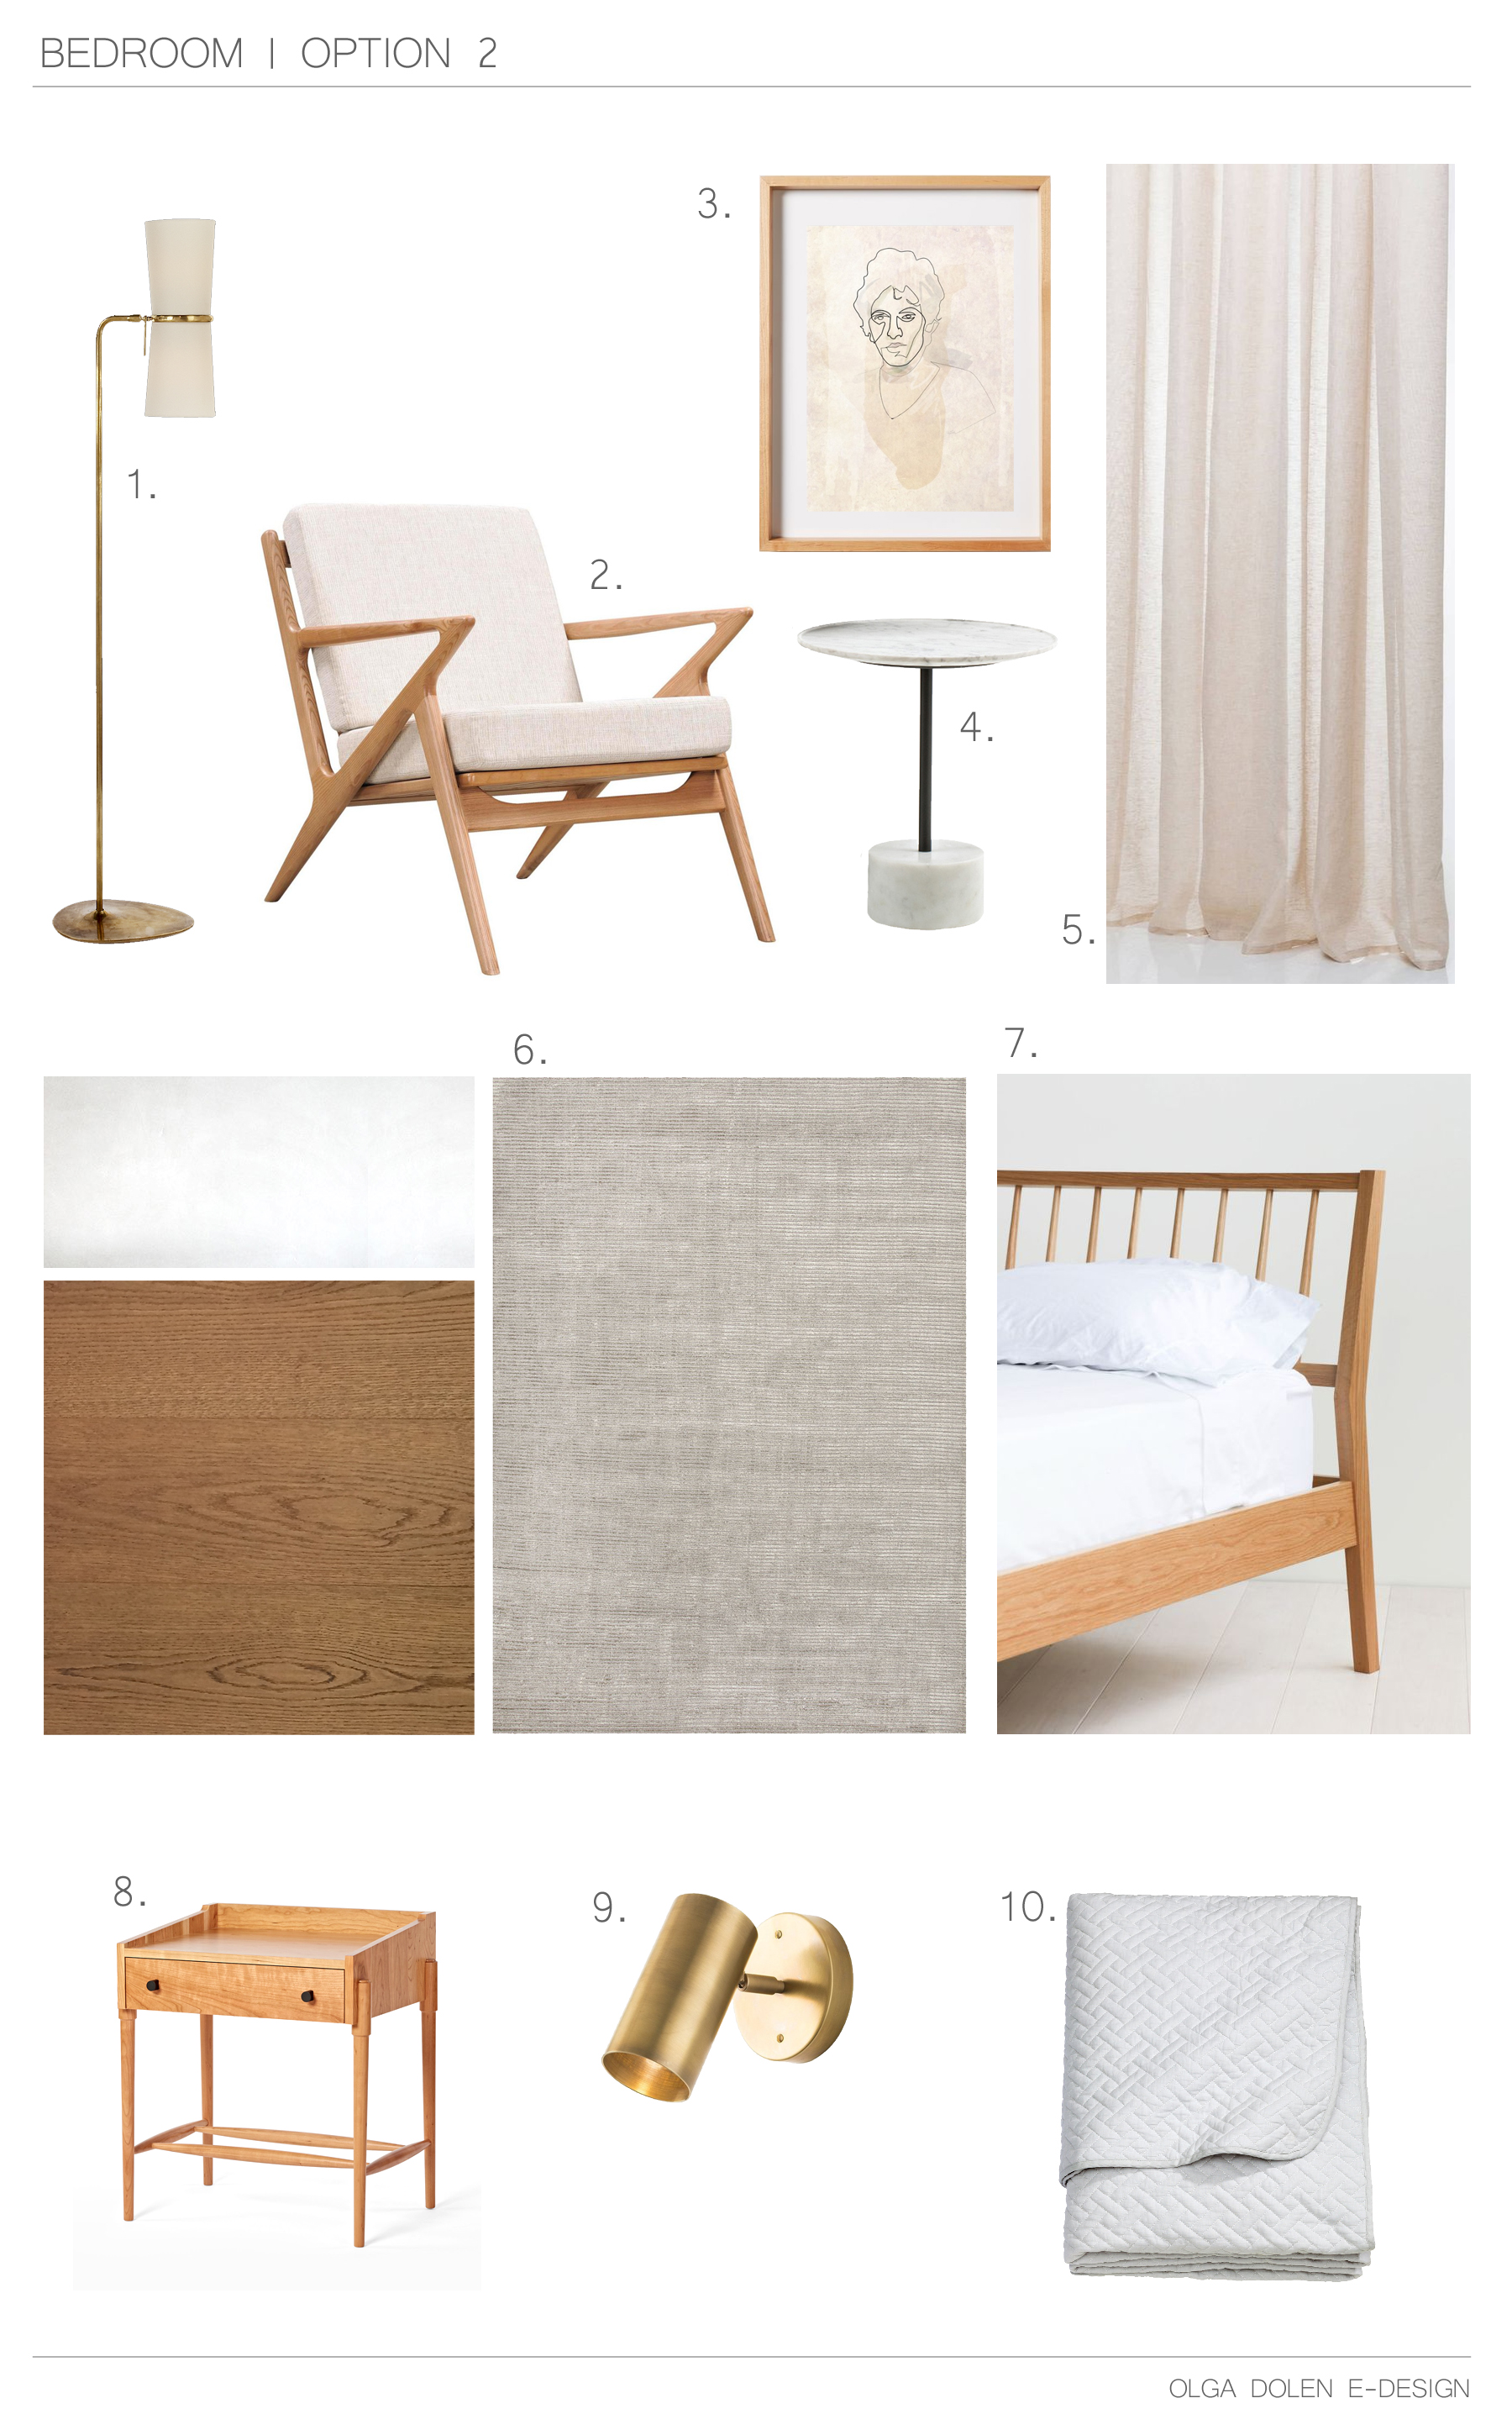 bedroom makeover, bedroom before, white room, bedroom intro, bedroom layout, bedroom floor plan, bedroom design plan, bedroom moodboard, bedroom mid century modern style